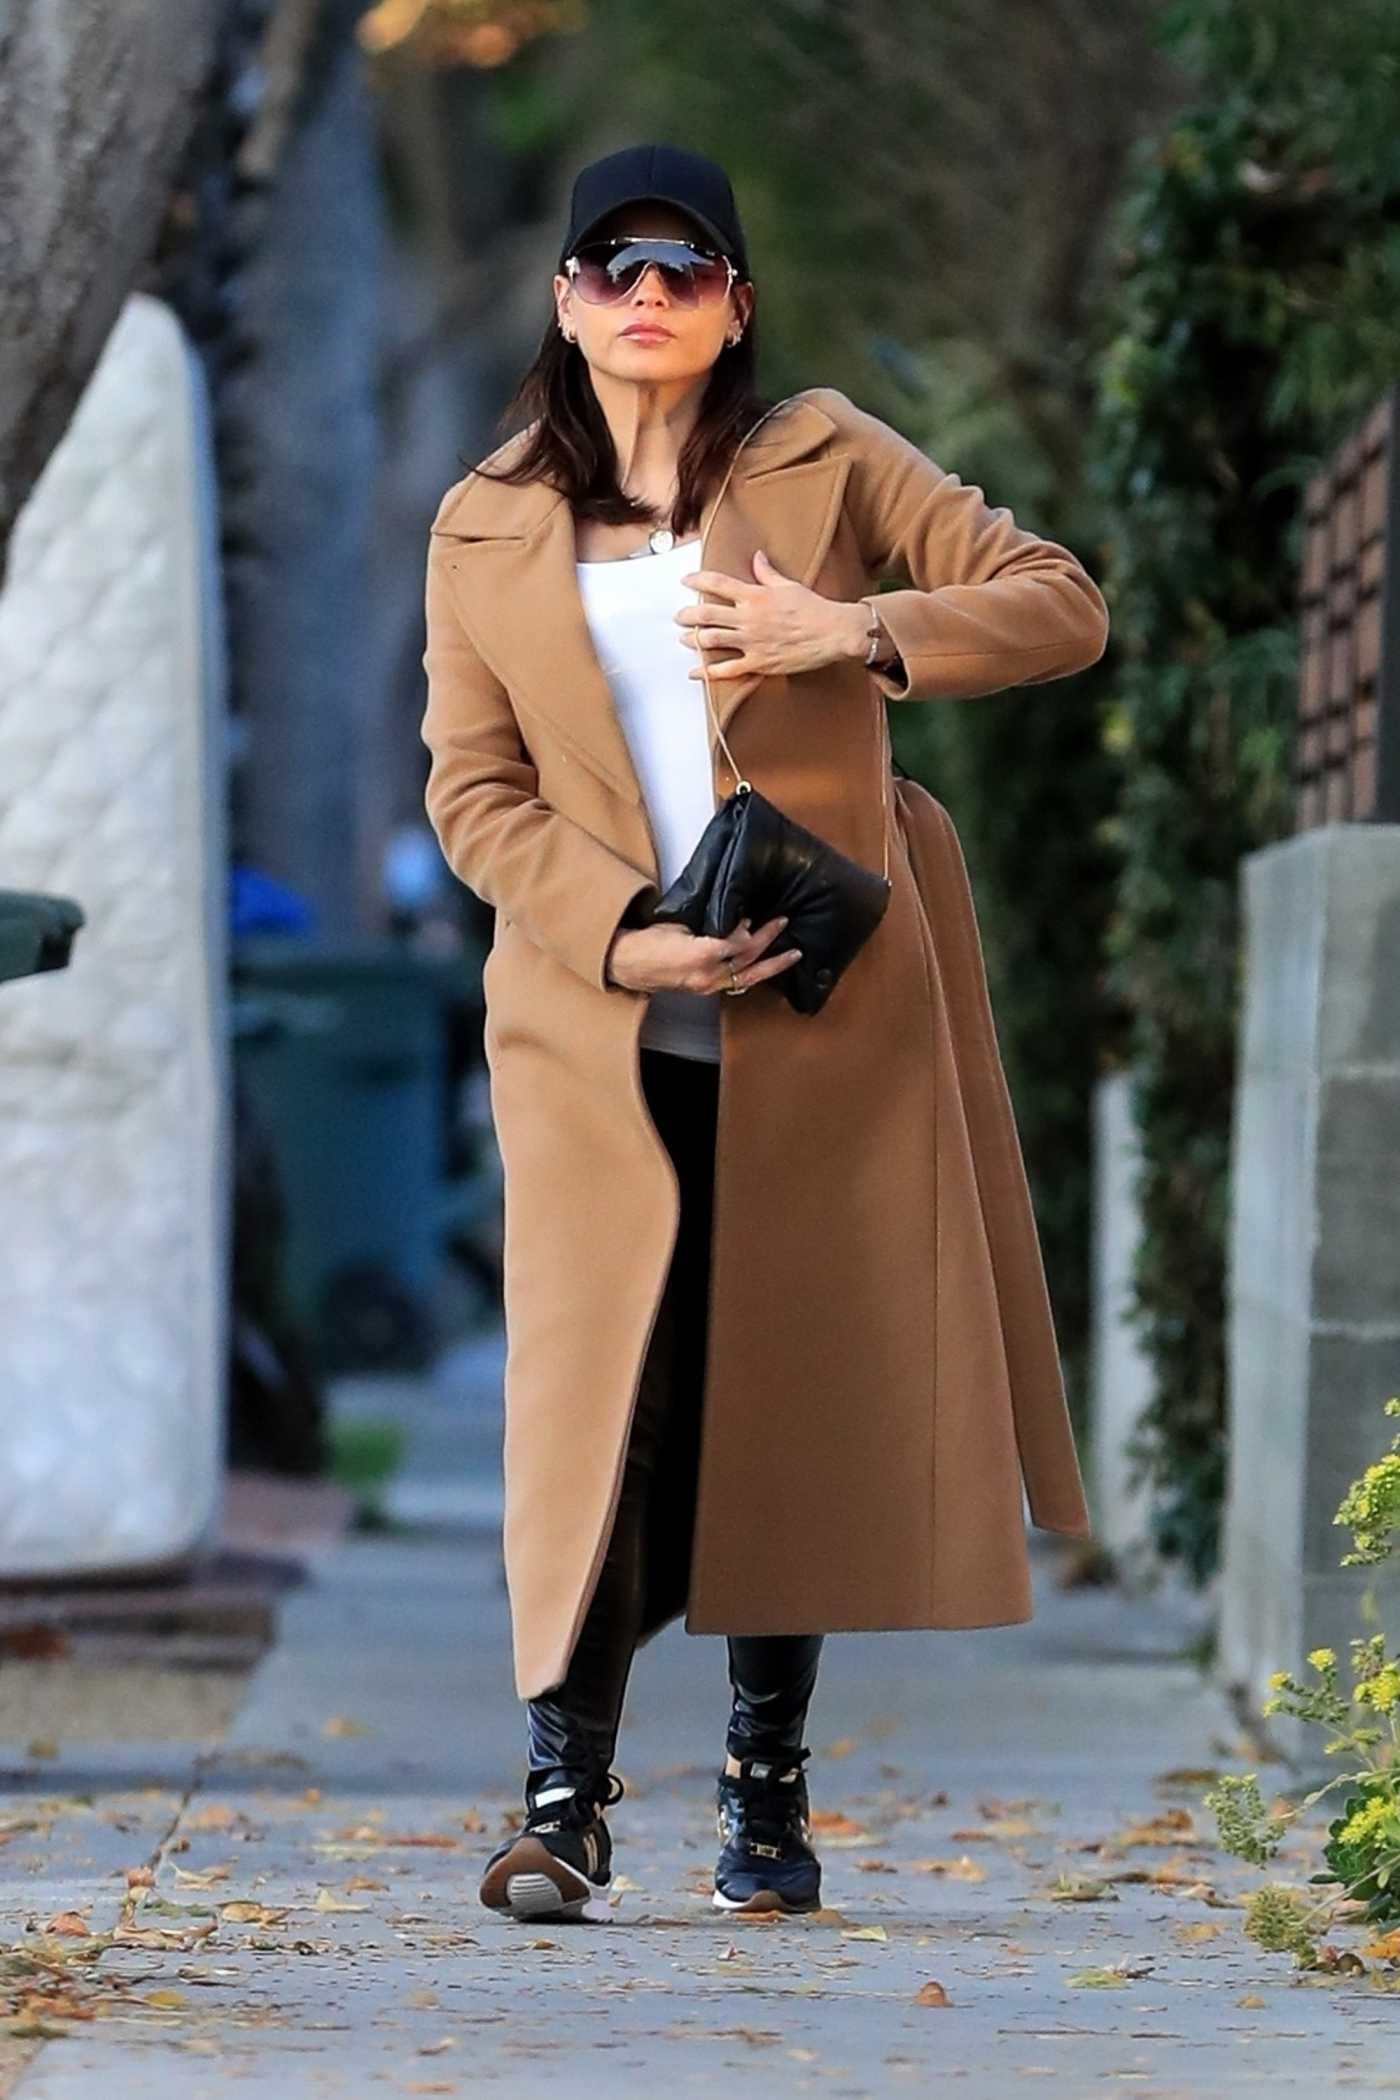 Jenna Dewan in a Beige Coat Was Seen Out in Studio City 01/22/2020